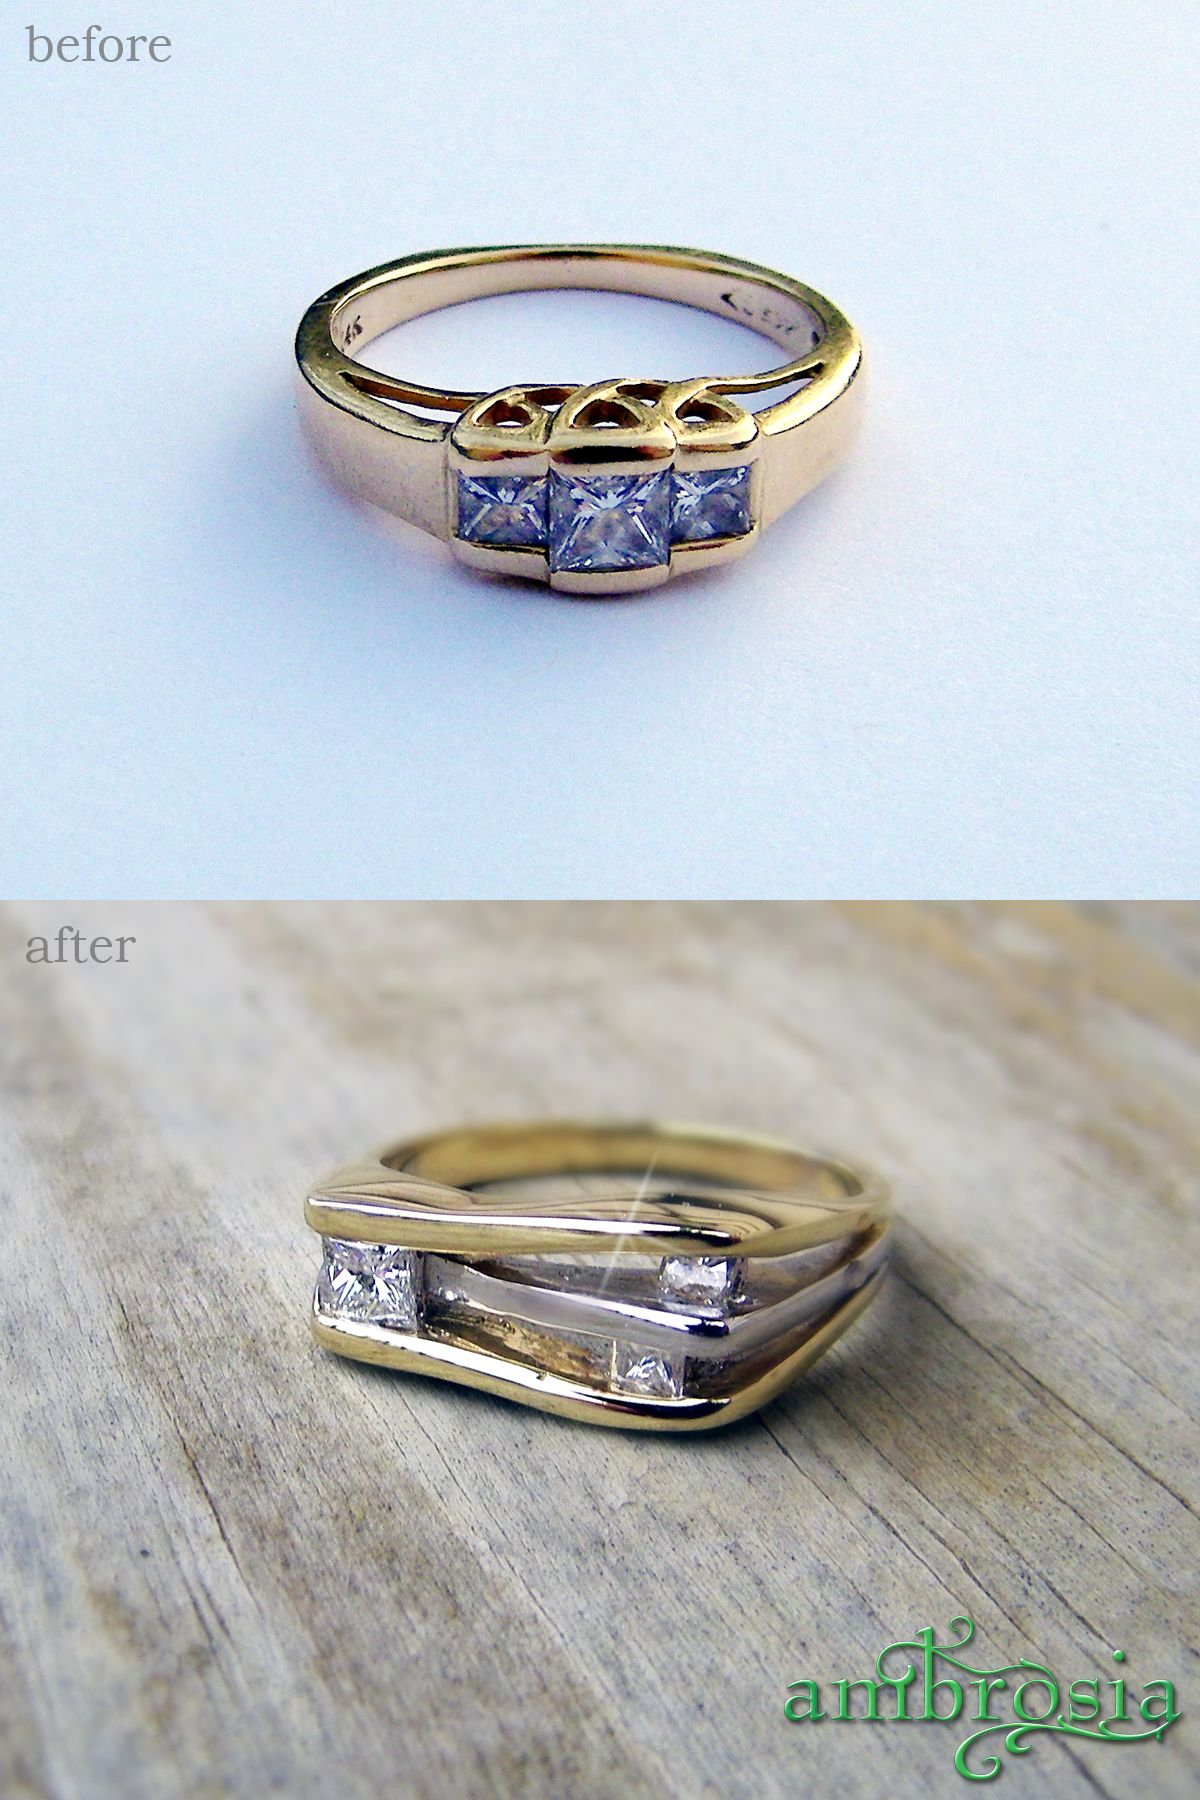 Her mothers wedding ring was redesigned into a new ring that fit